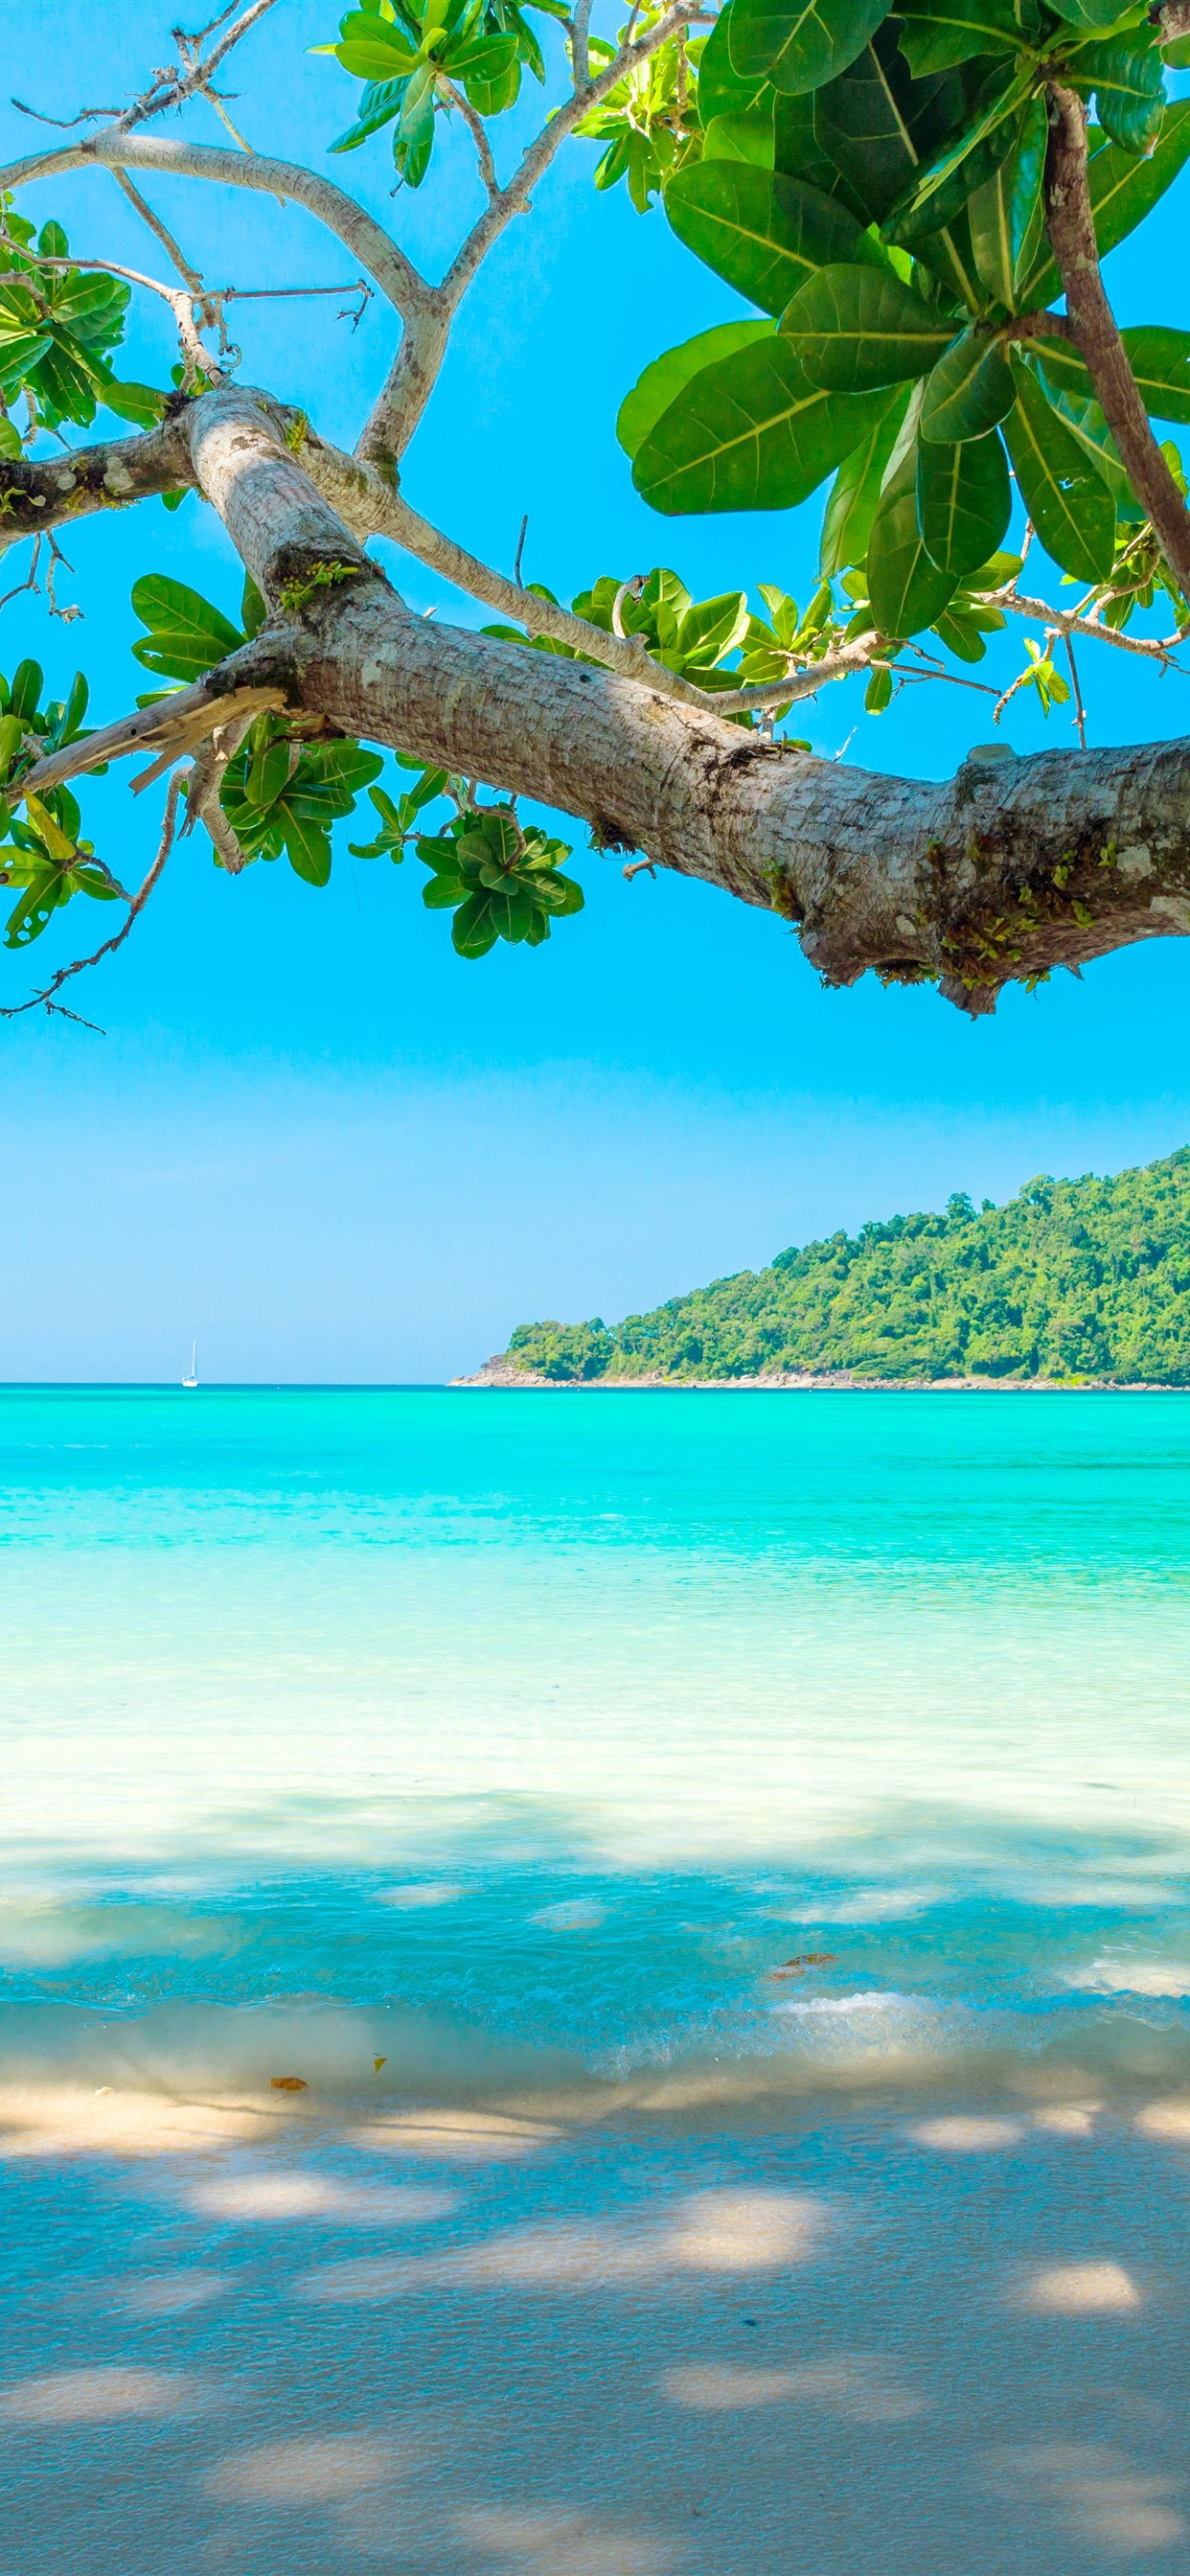 Wallpaper Beautiful Sea Beach Tree Tropical 5120x2880 Uhd